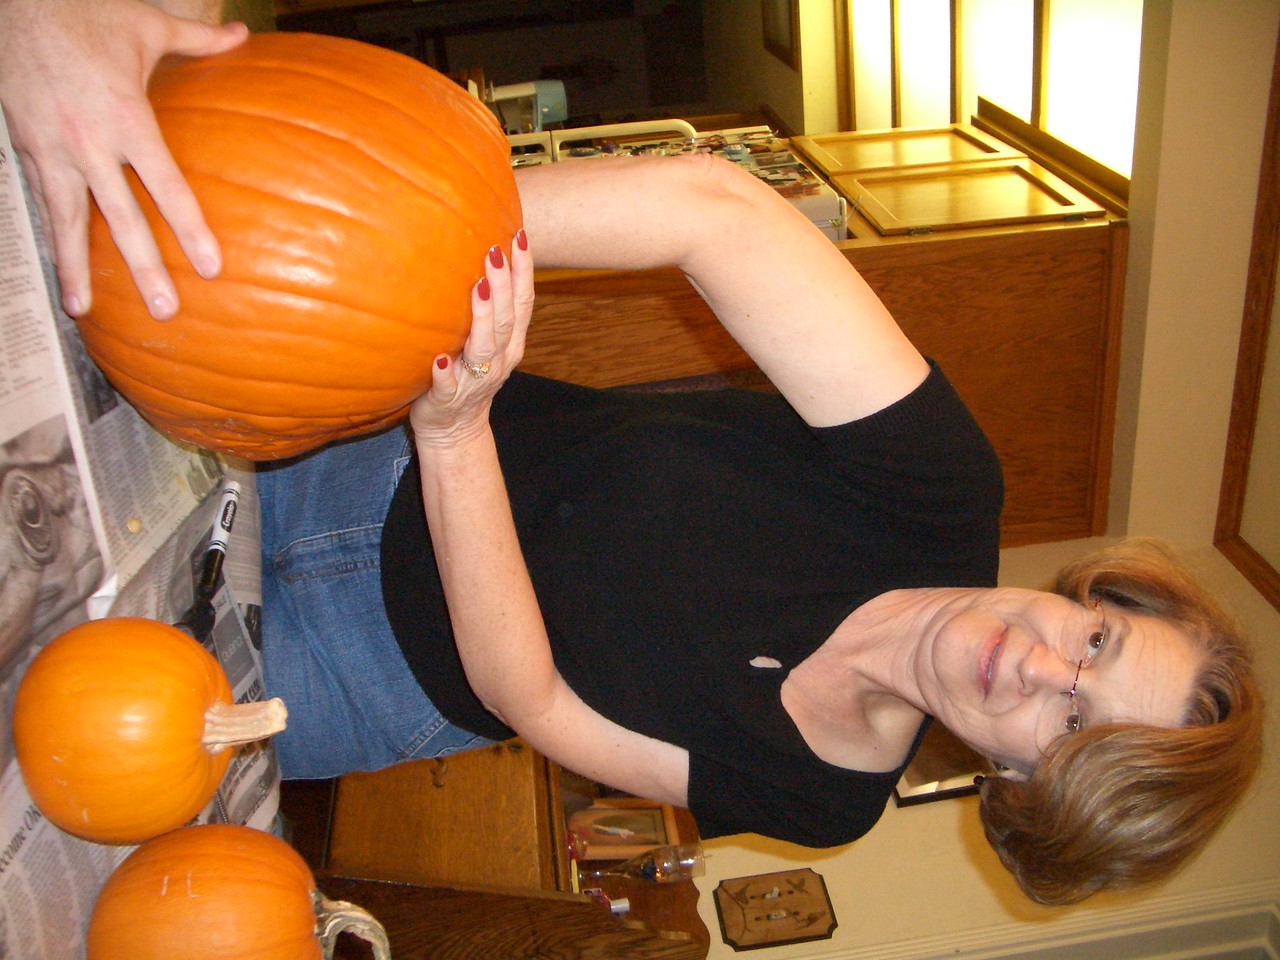 Grandma Jan uses a ice cream scoop to clean the pumpkin.